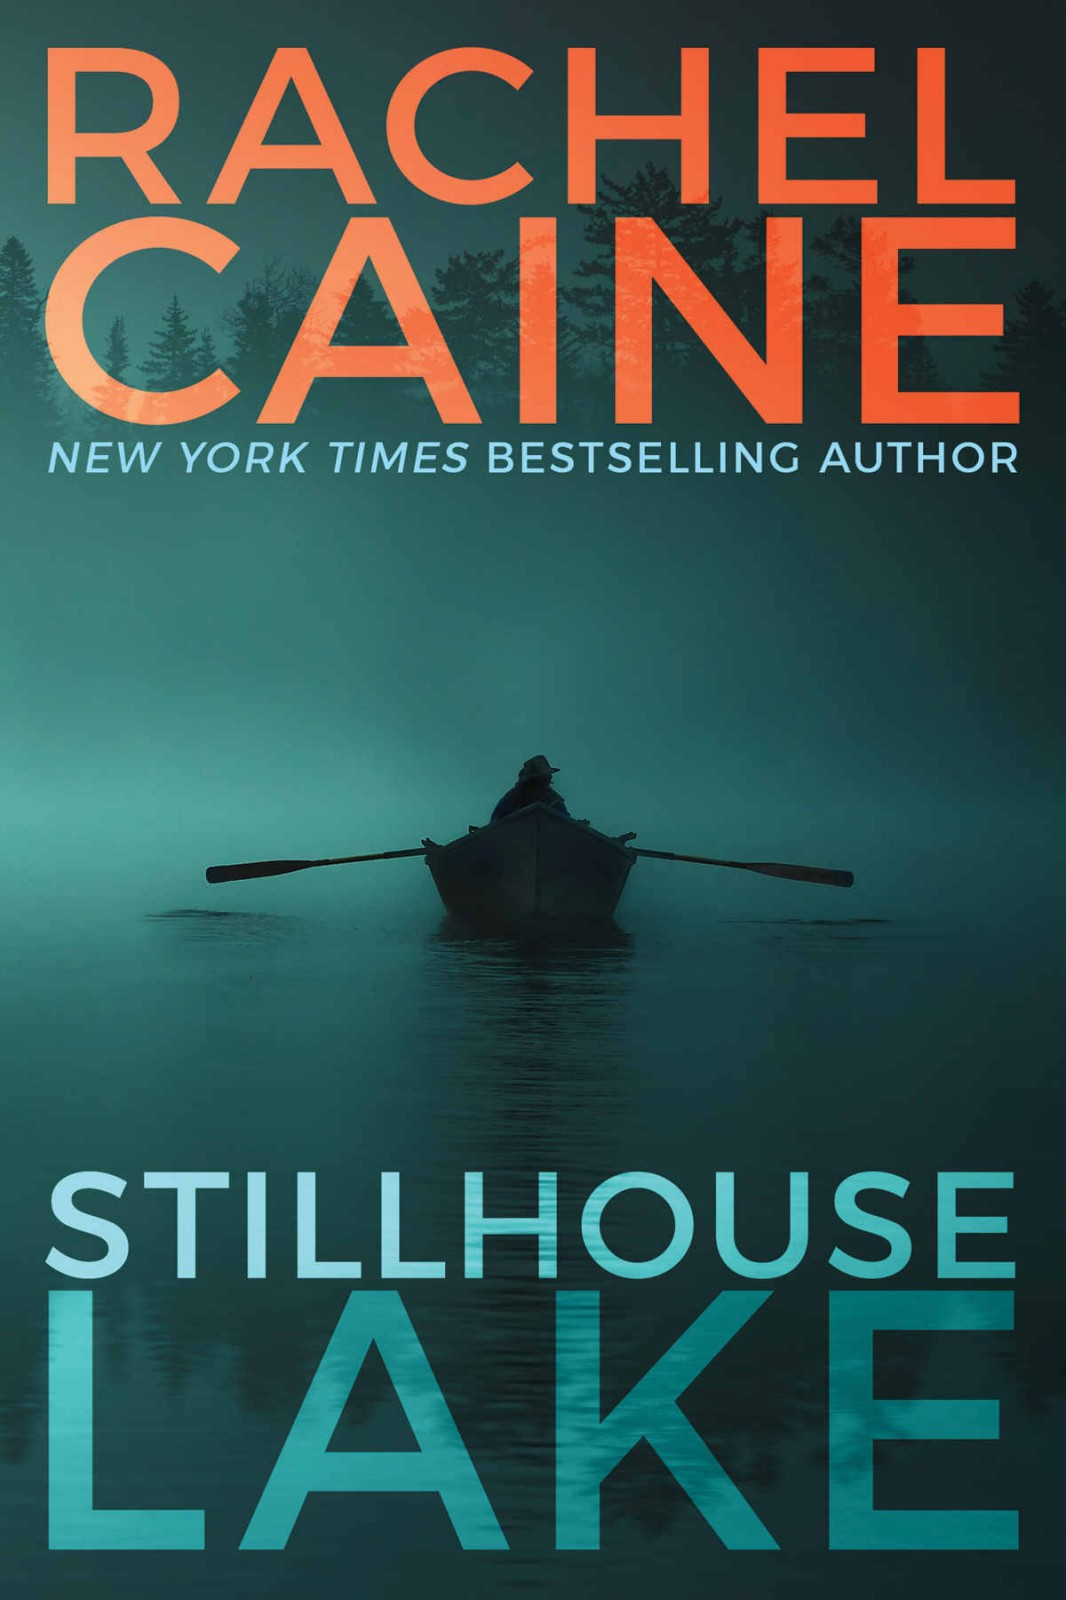 Stillhouse Lake - Rachel Caine [kindle] [mobi]